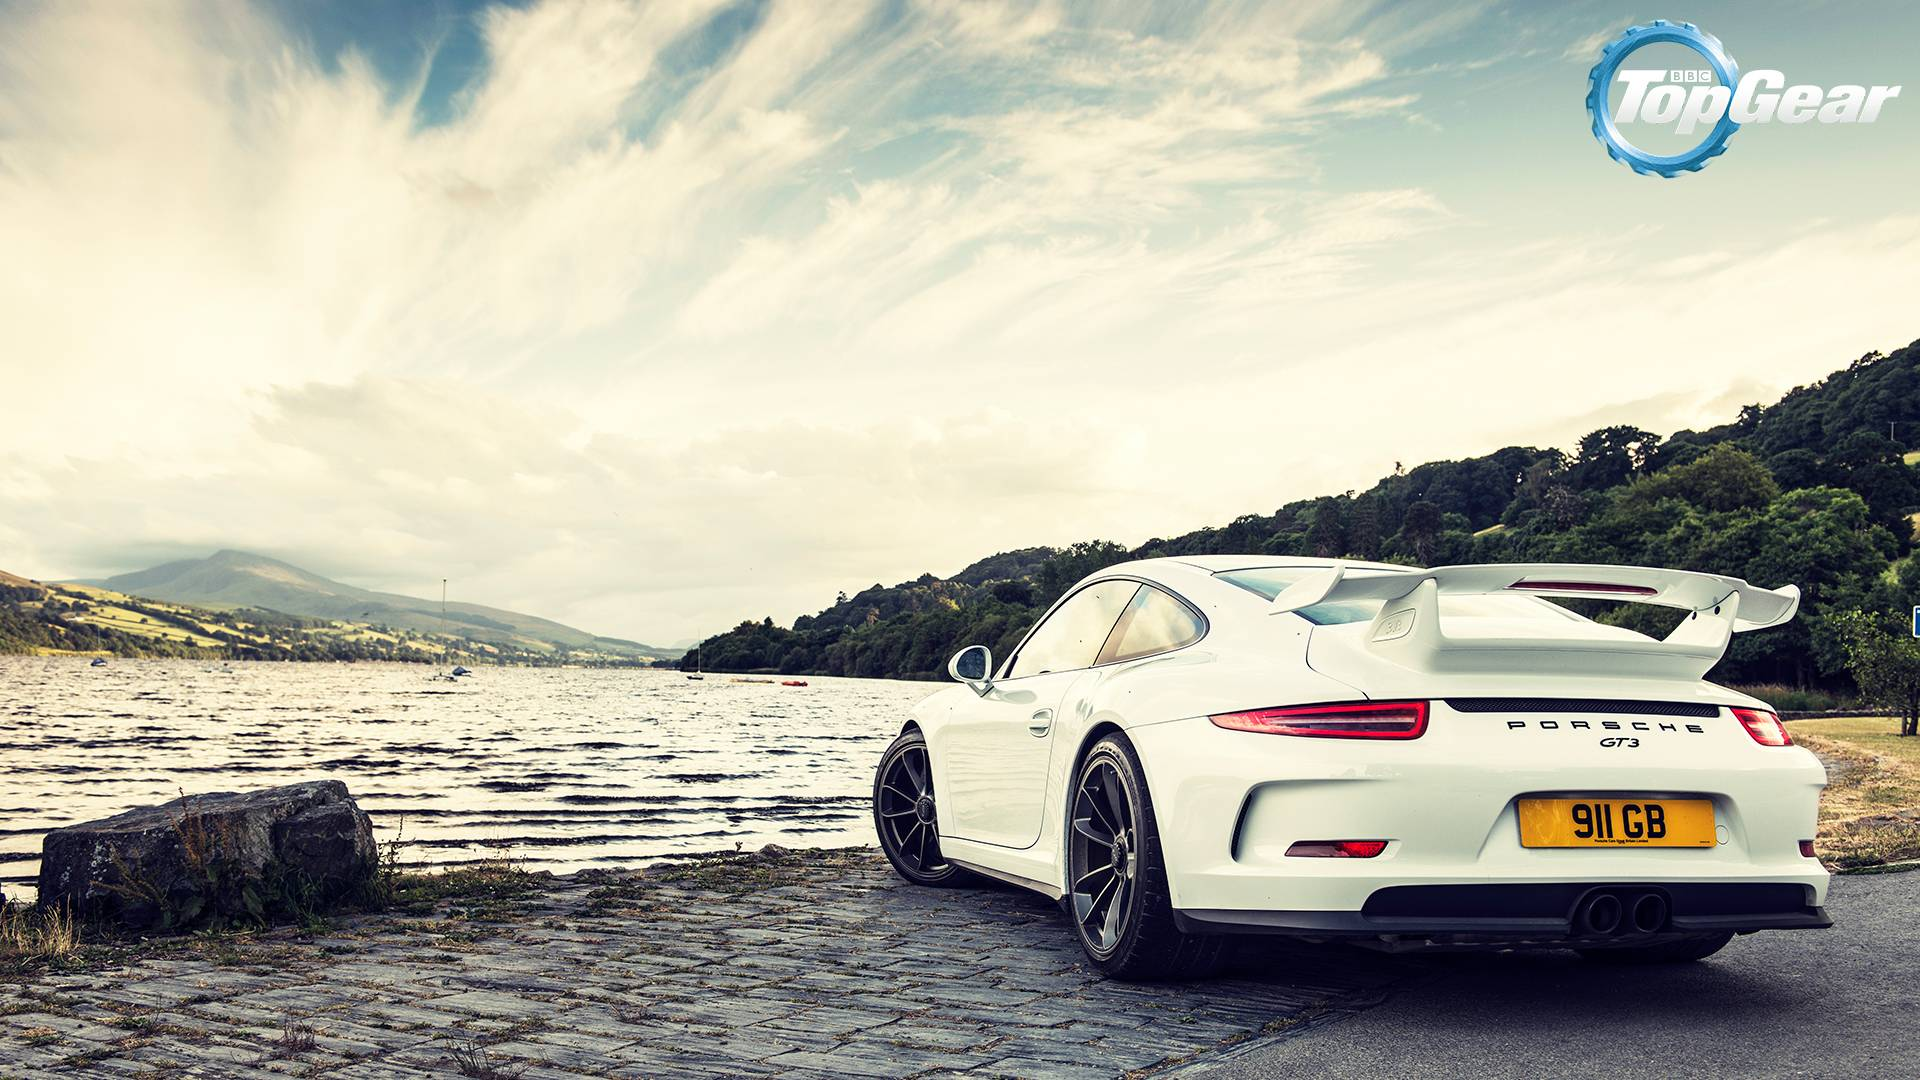 Porsche GT3 Wallpapers 1920x1080